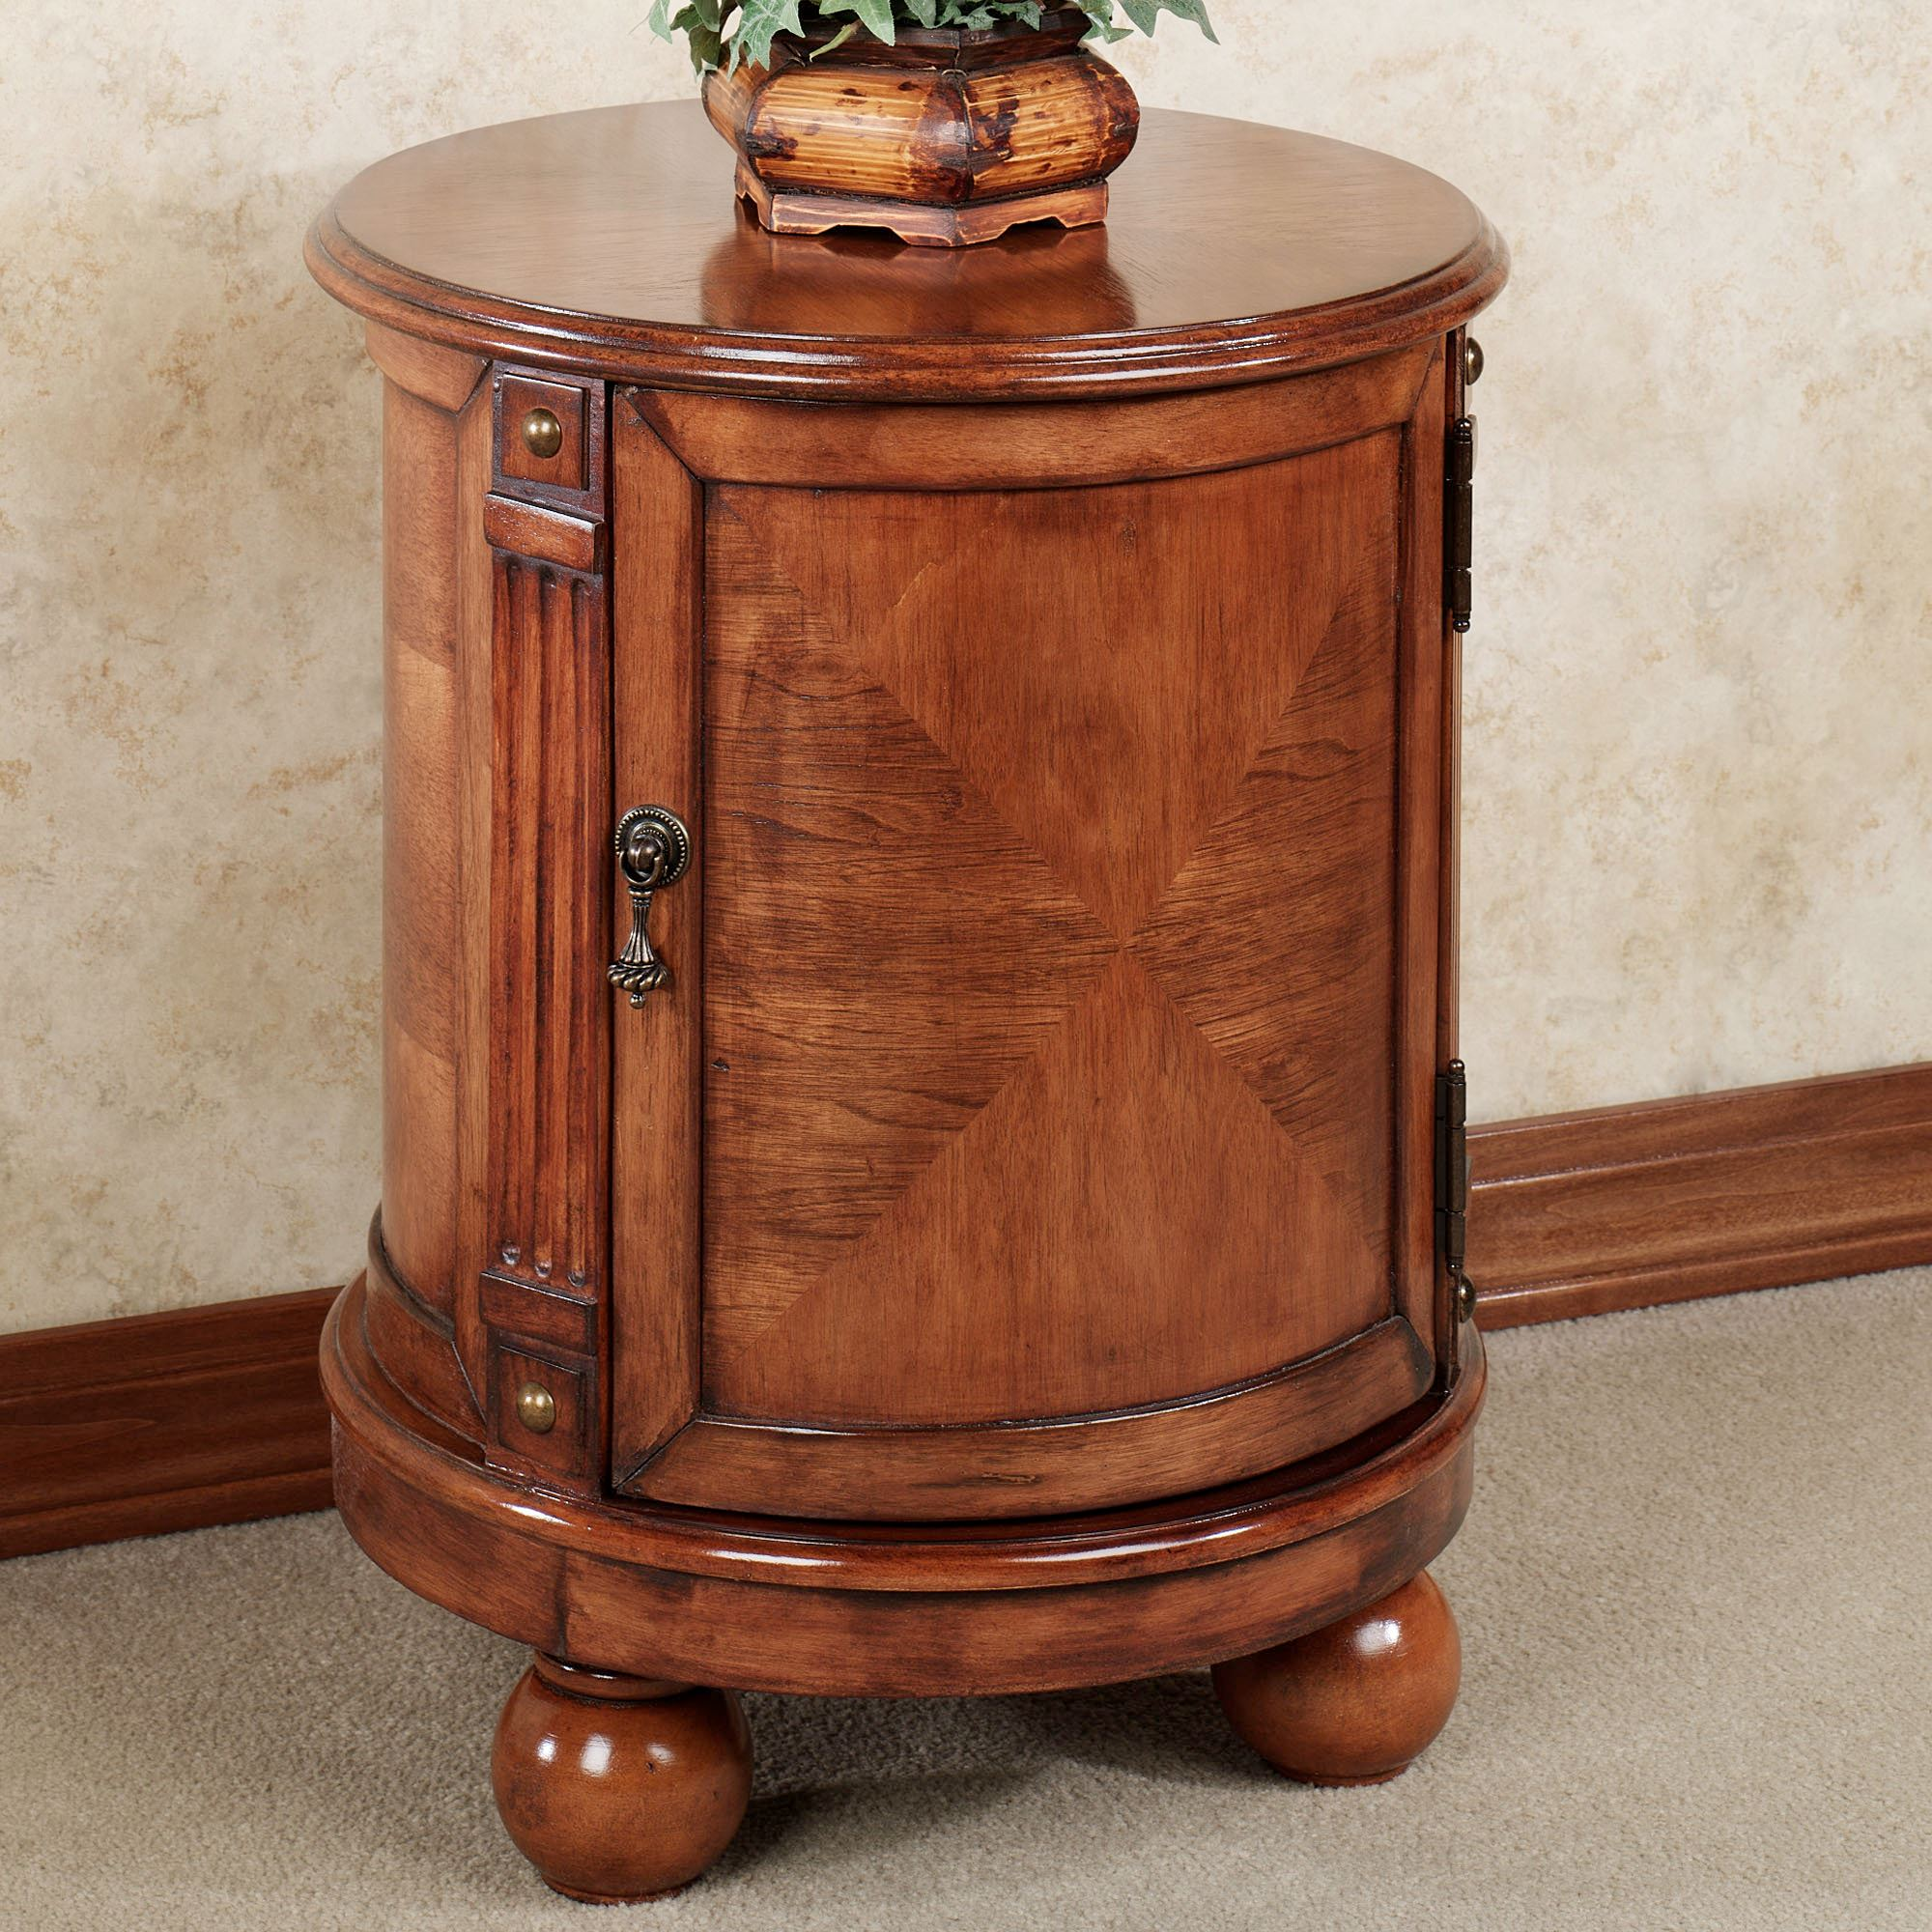 eldred round chairside accent storage chest table with touch zoom powell espresso ikea garden chairs yellow bedside lamp glass dining set console bark thins target antique nesting